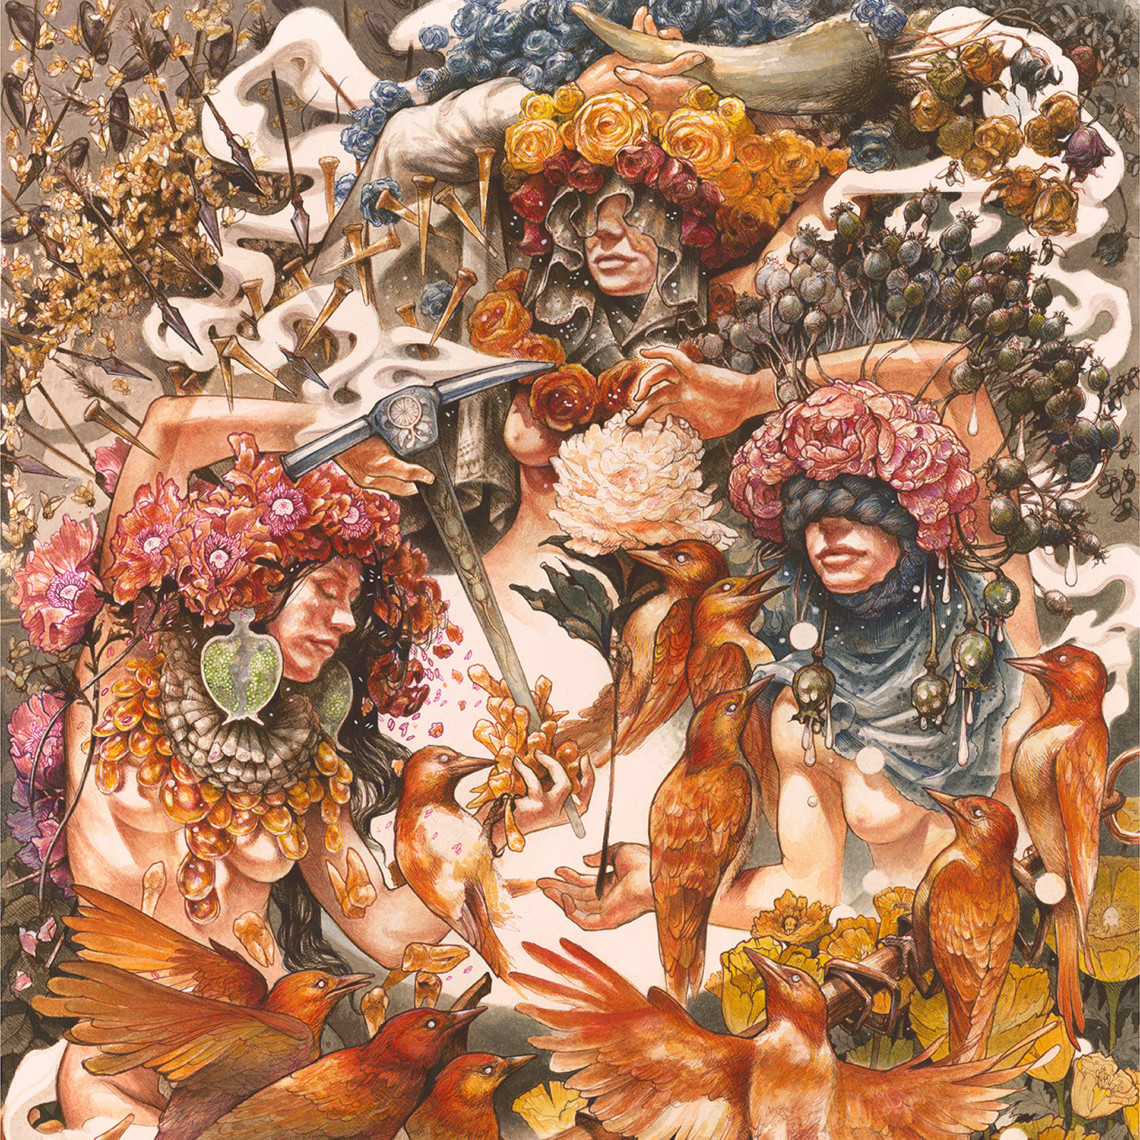 Baroness – Gold & Grey Review